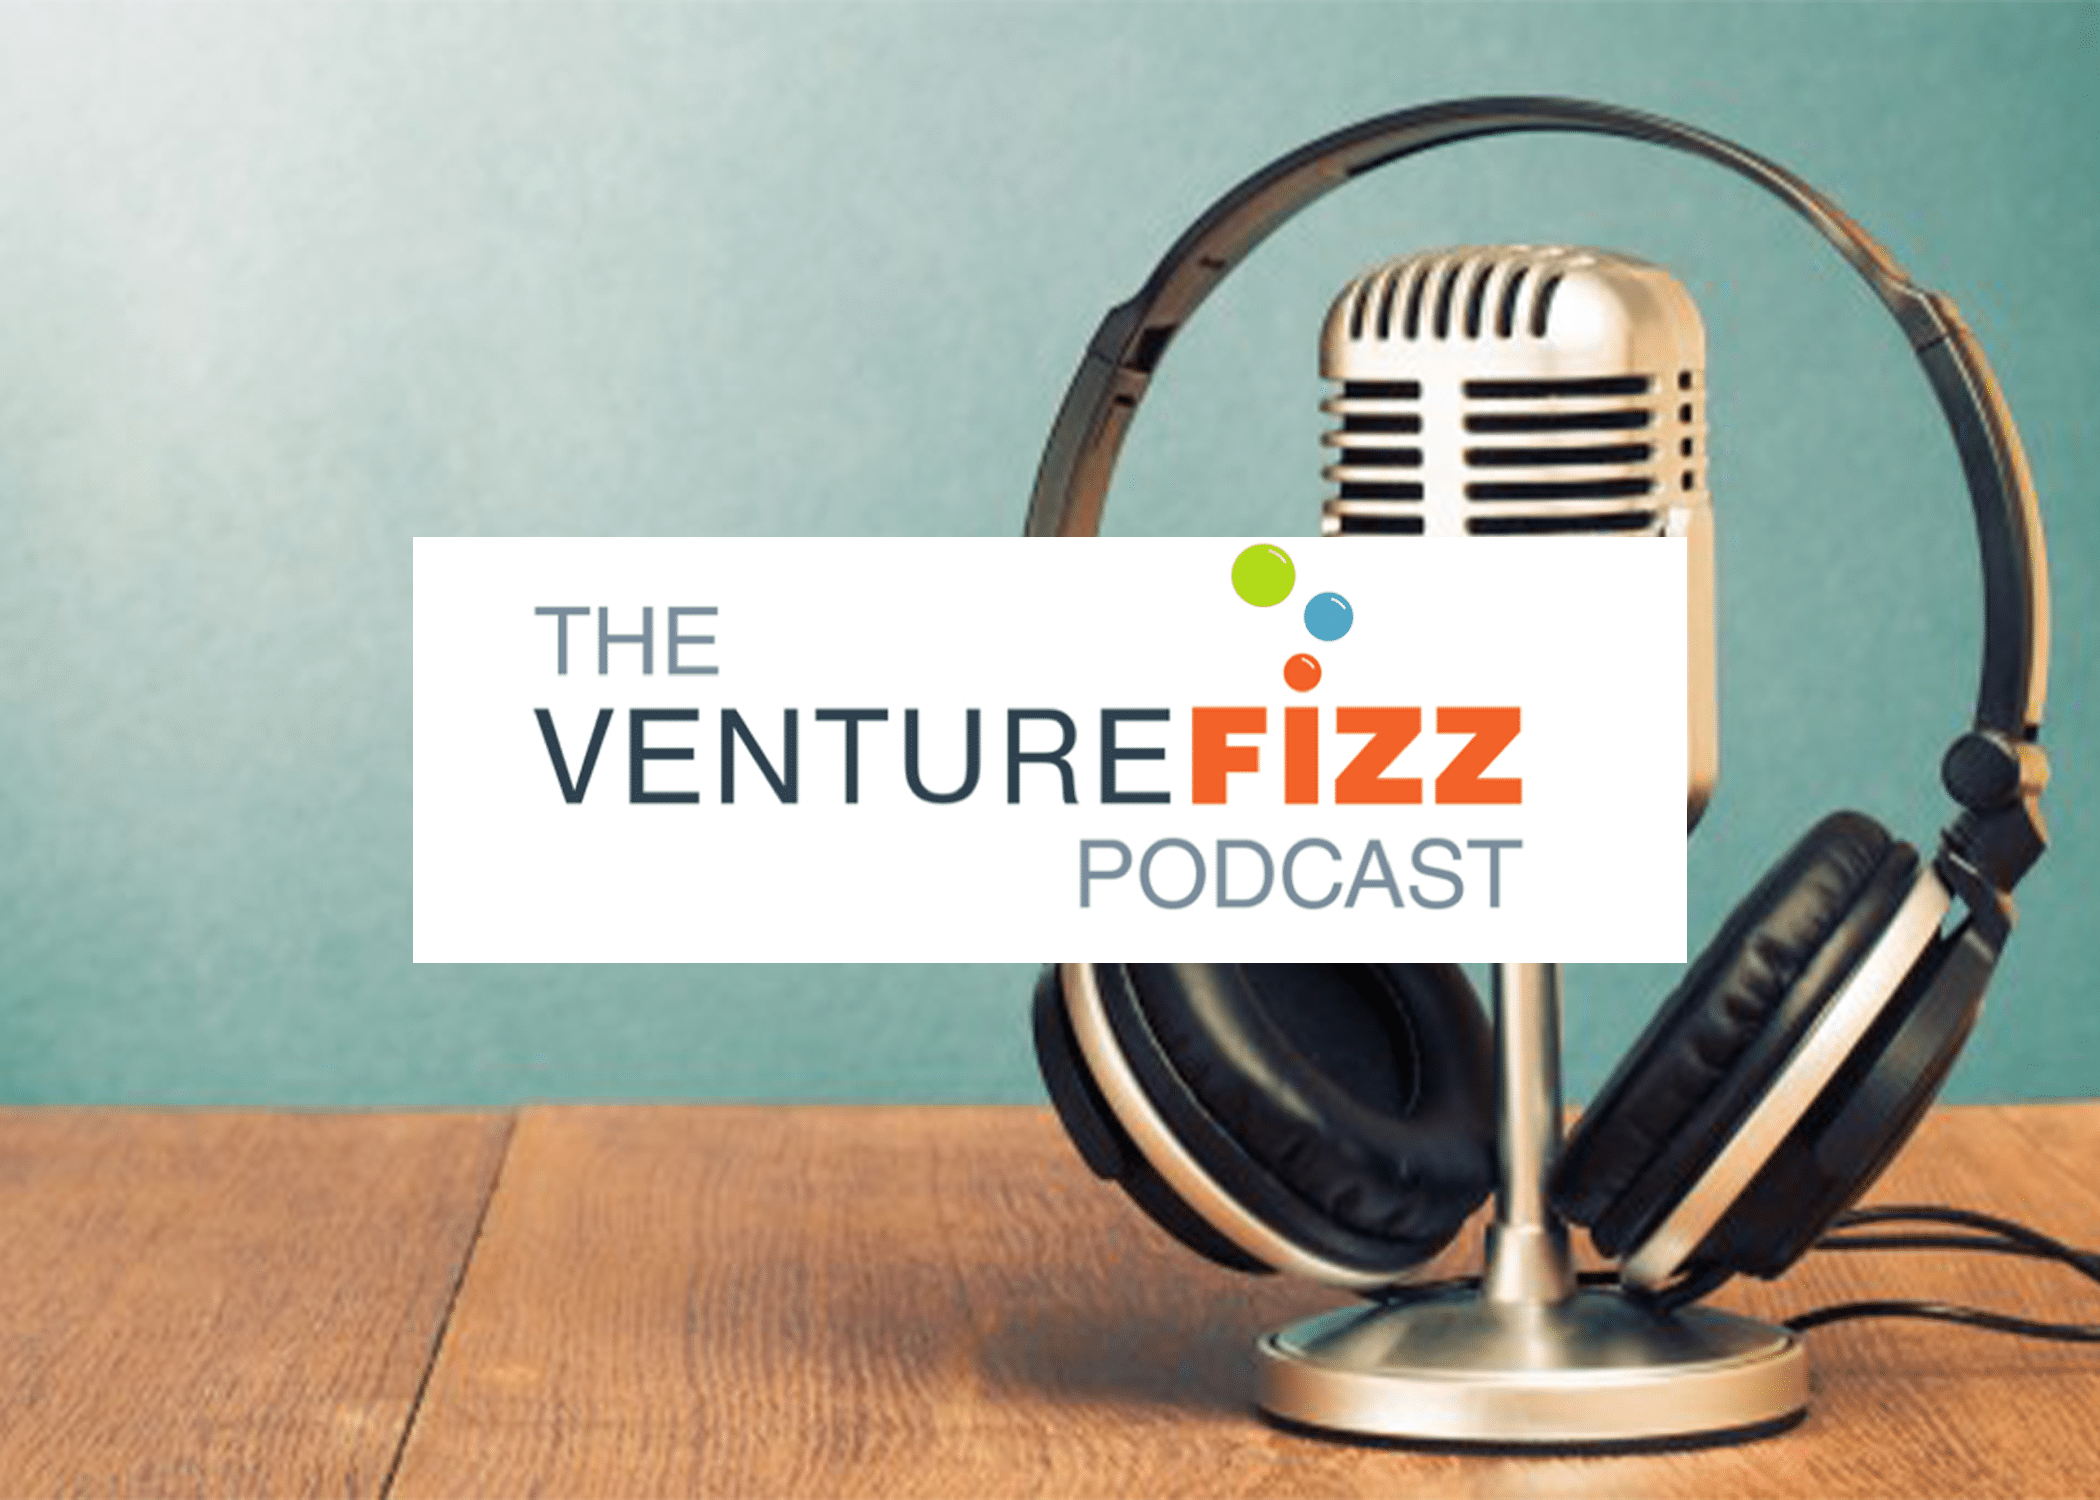 Jeet Singh – Co-Founder and CEO of Redstar Ventures